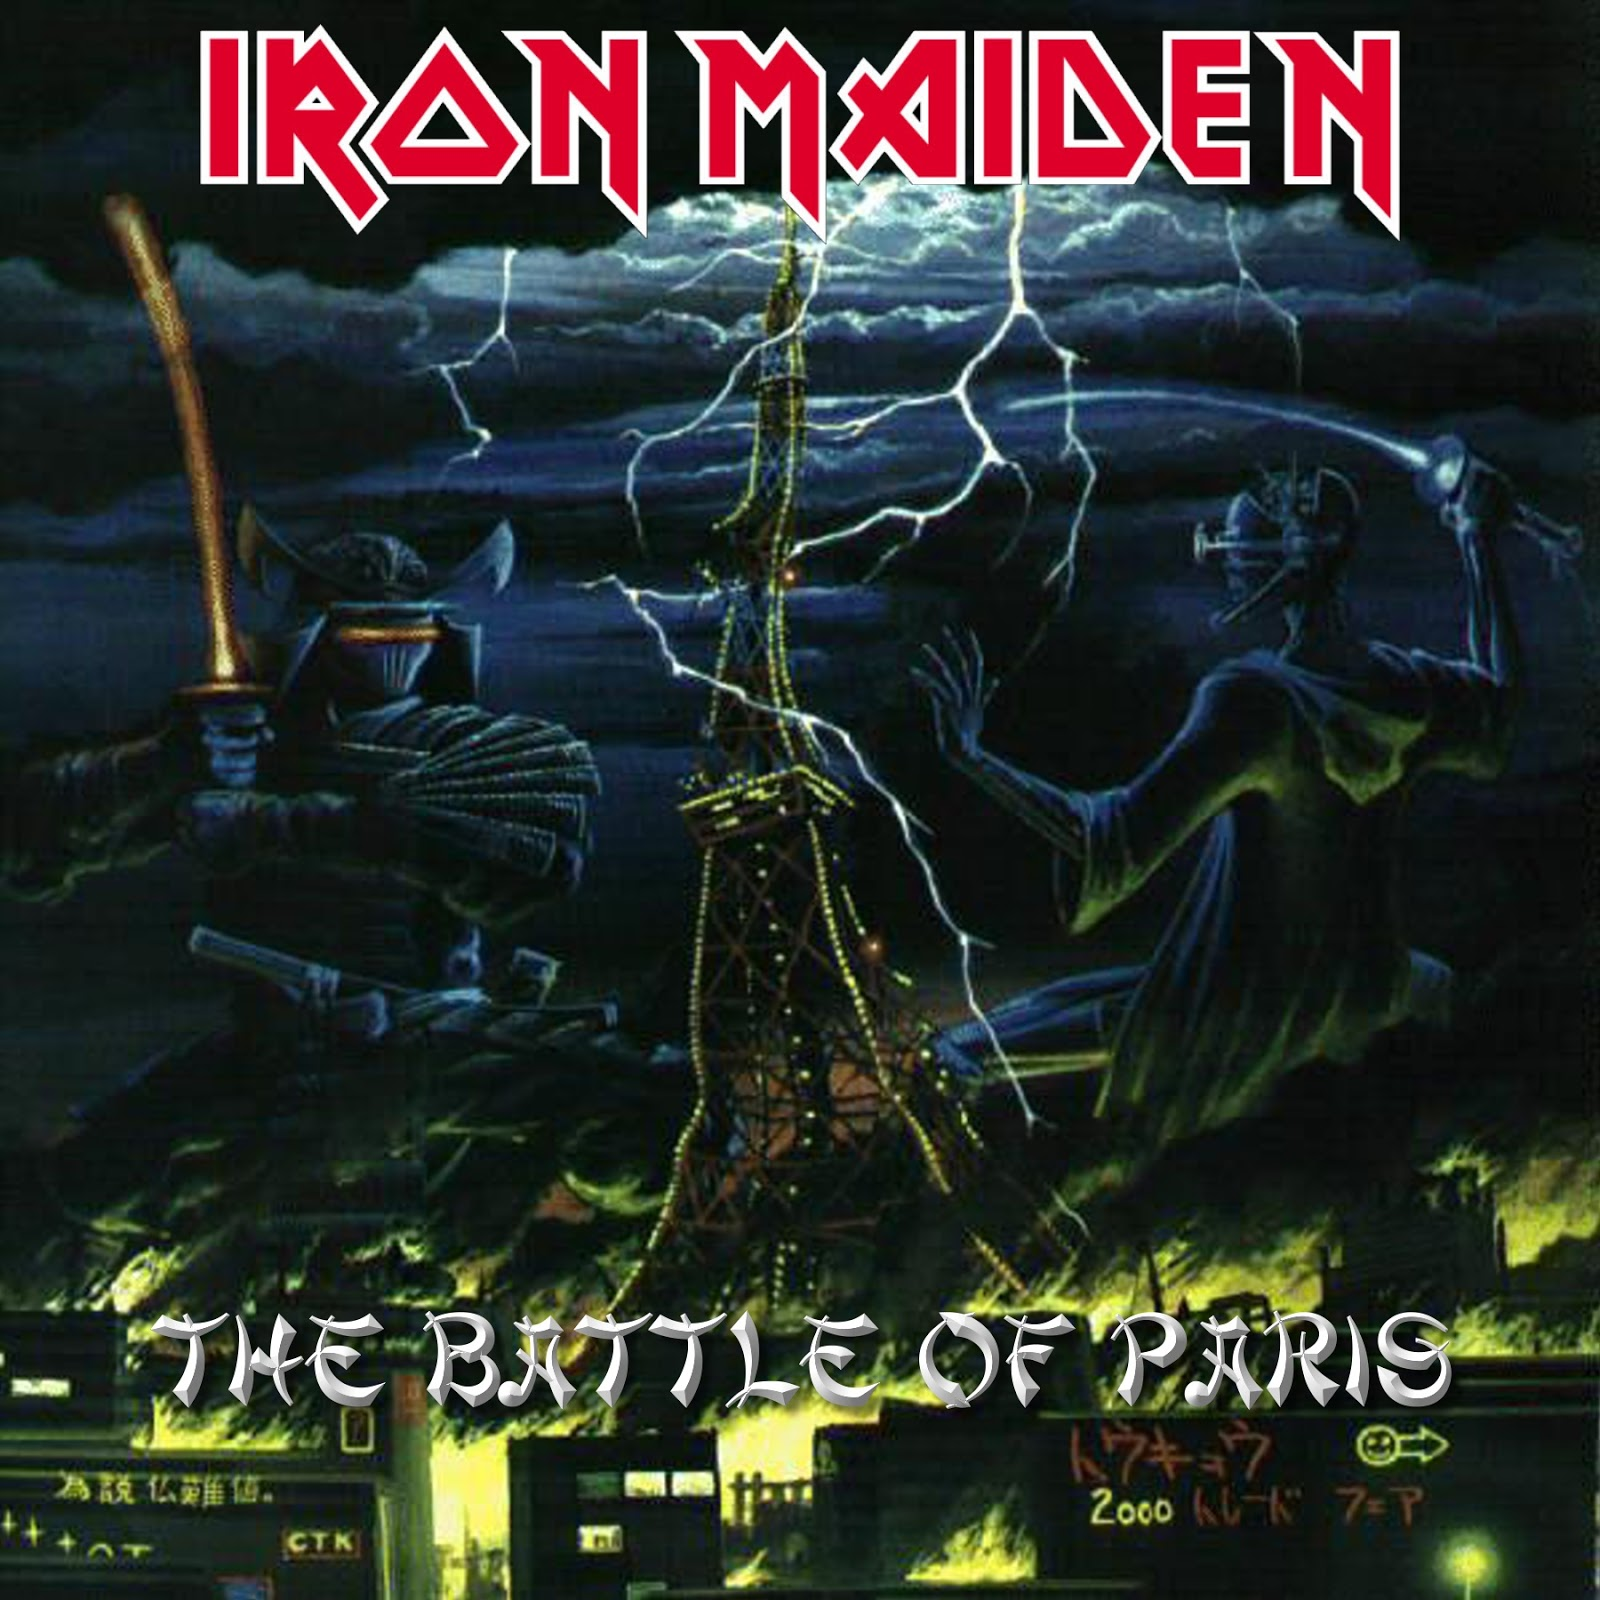 Reliquary Iron Maiden 1986 11 29 The Battle Of Paris